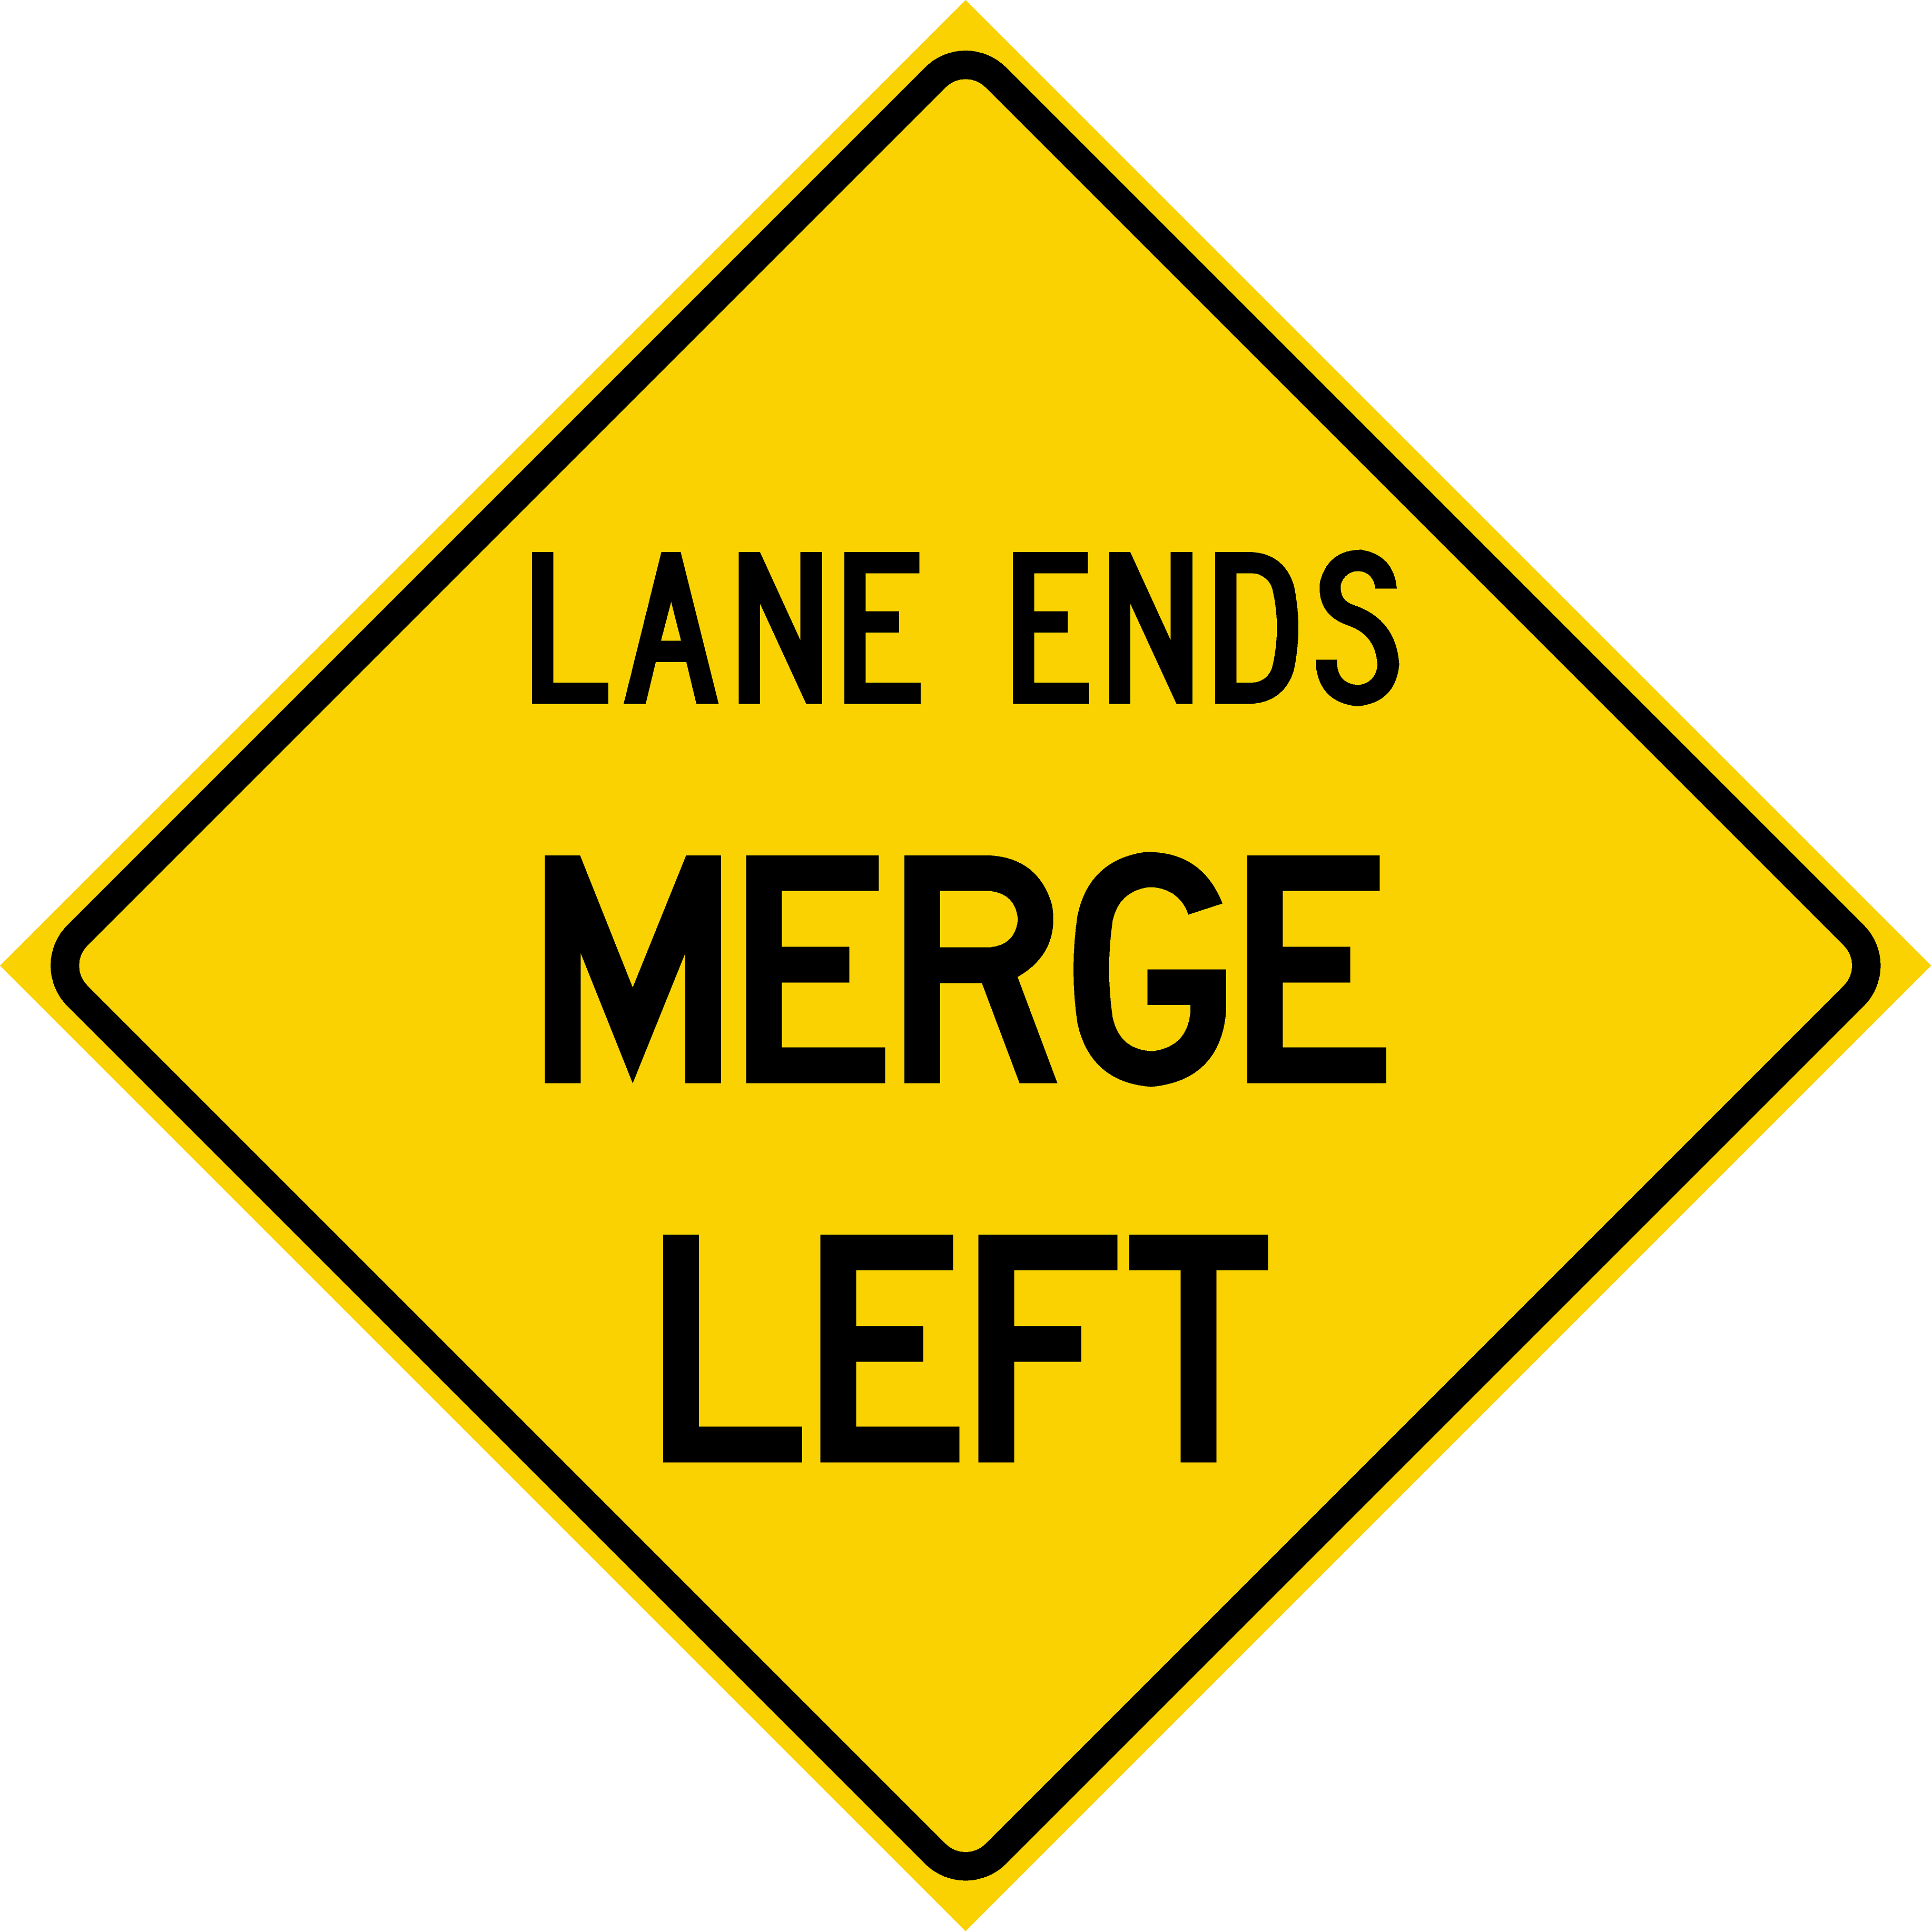 Lane Ends Merge Left (W9-2L)